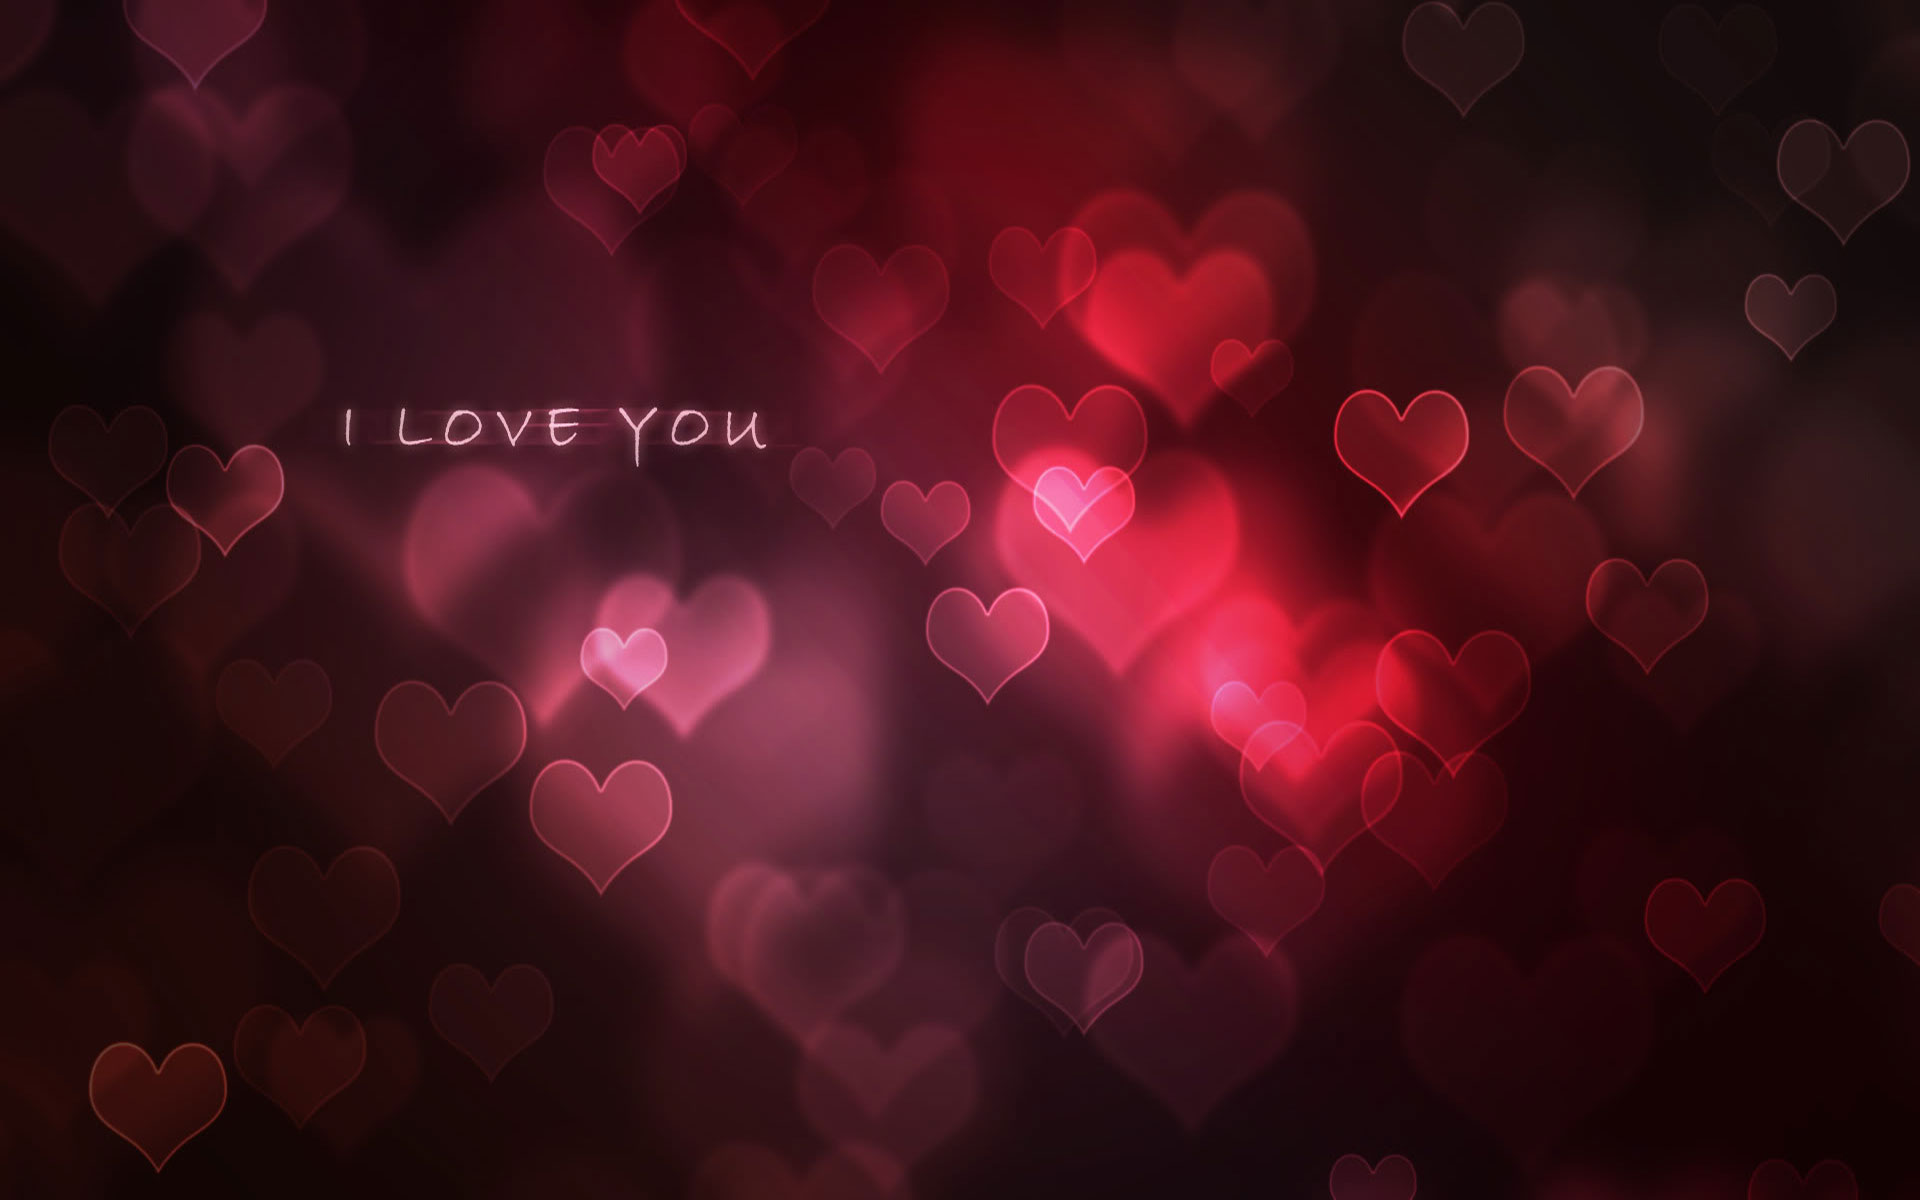 Love Wallpaper Mobile Size : 25+ Free HD I Love You Wallpapers cute I Love You Images